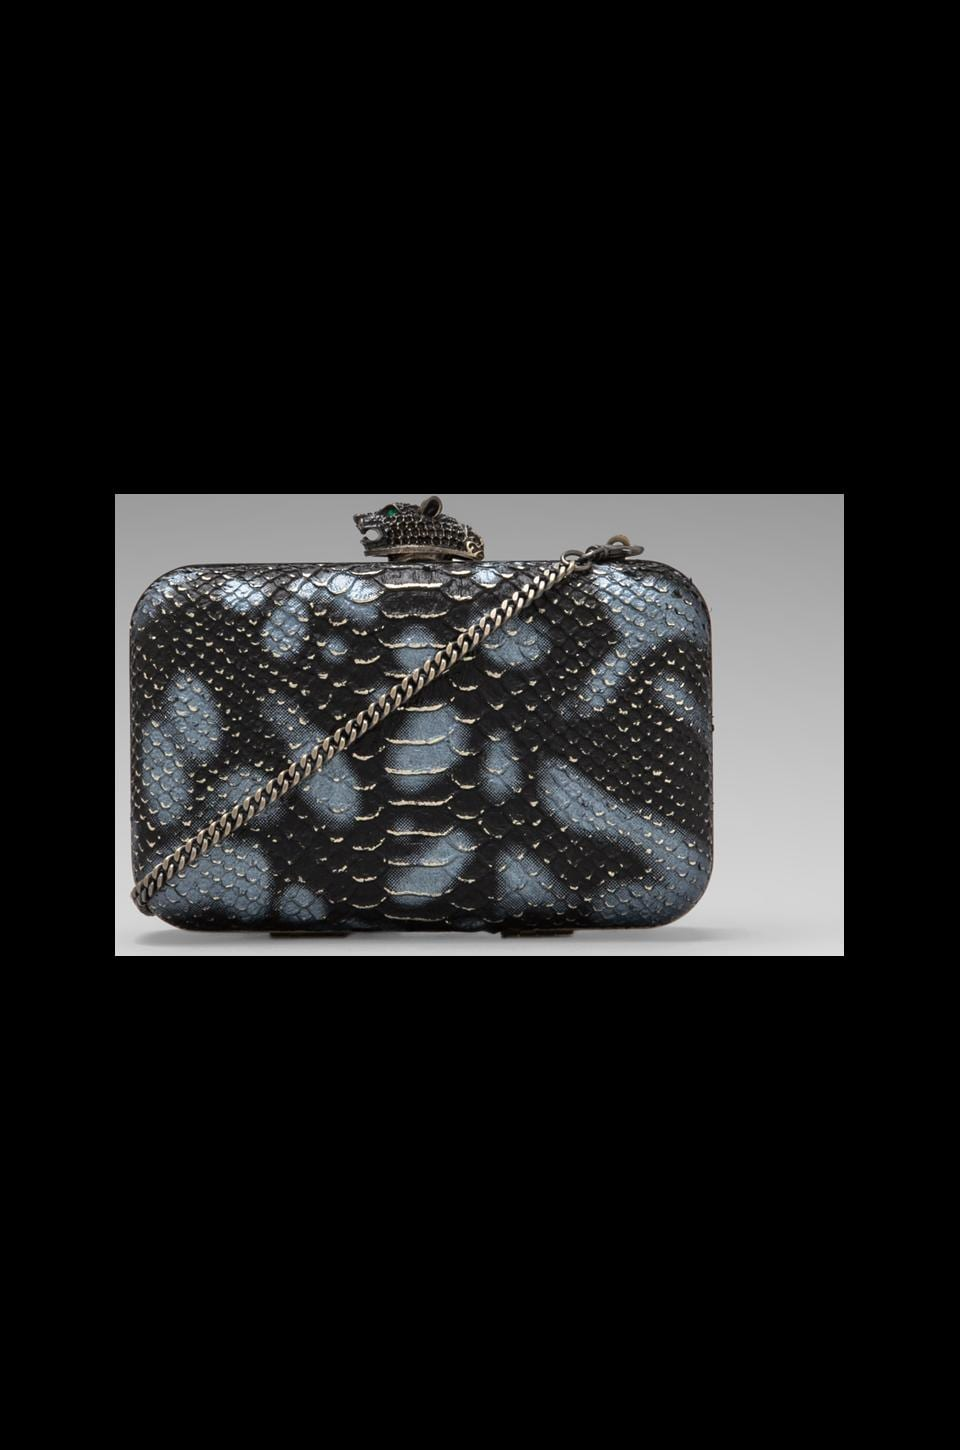 House of Harlow Dylan Clutch in Black/White/Gold Foil Snake